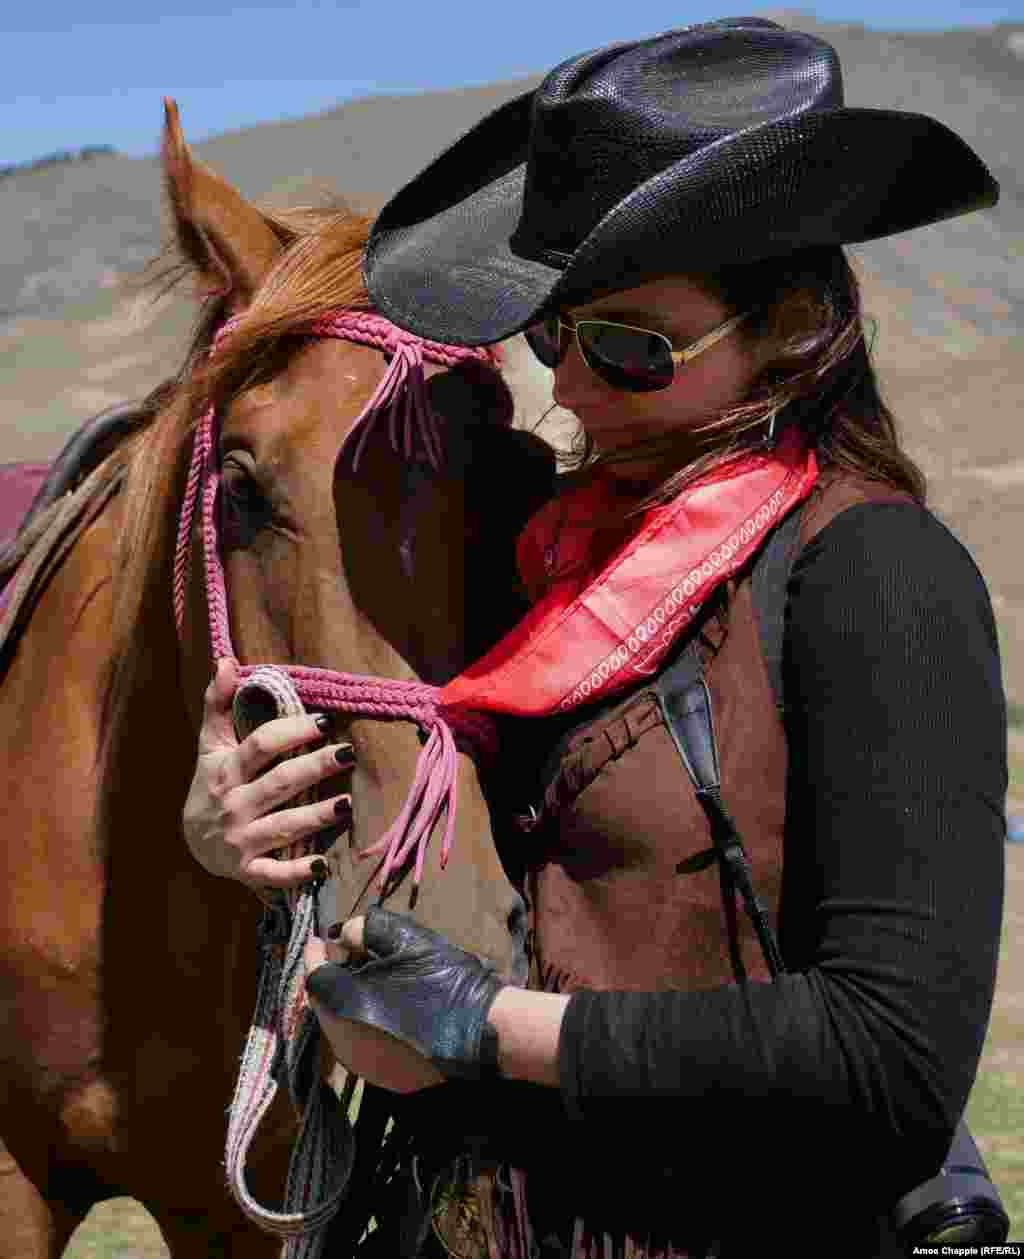 "Texan Susannah Winfield comforts her horse before the event. Winfield told RFE/RL there was some head scratching among the U.S. contingent over what exactly America's traditional dress was: ""I think a lot of [Kyrgyz] people thought we would compete in native American clothing, but we had to explain that we can't really do that, and we figured the cowboy look would be less controversial."""